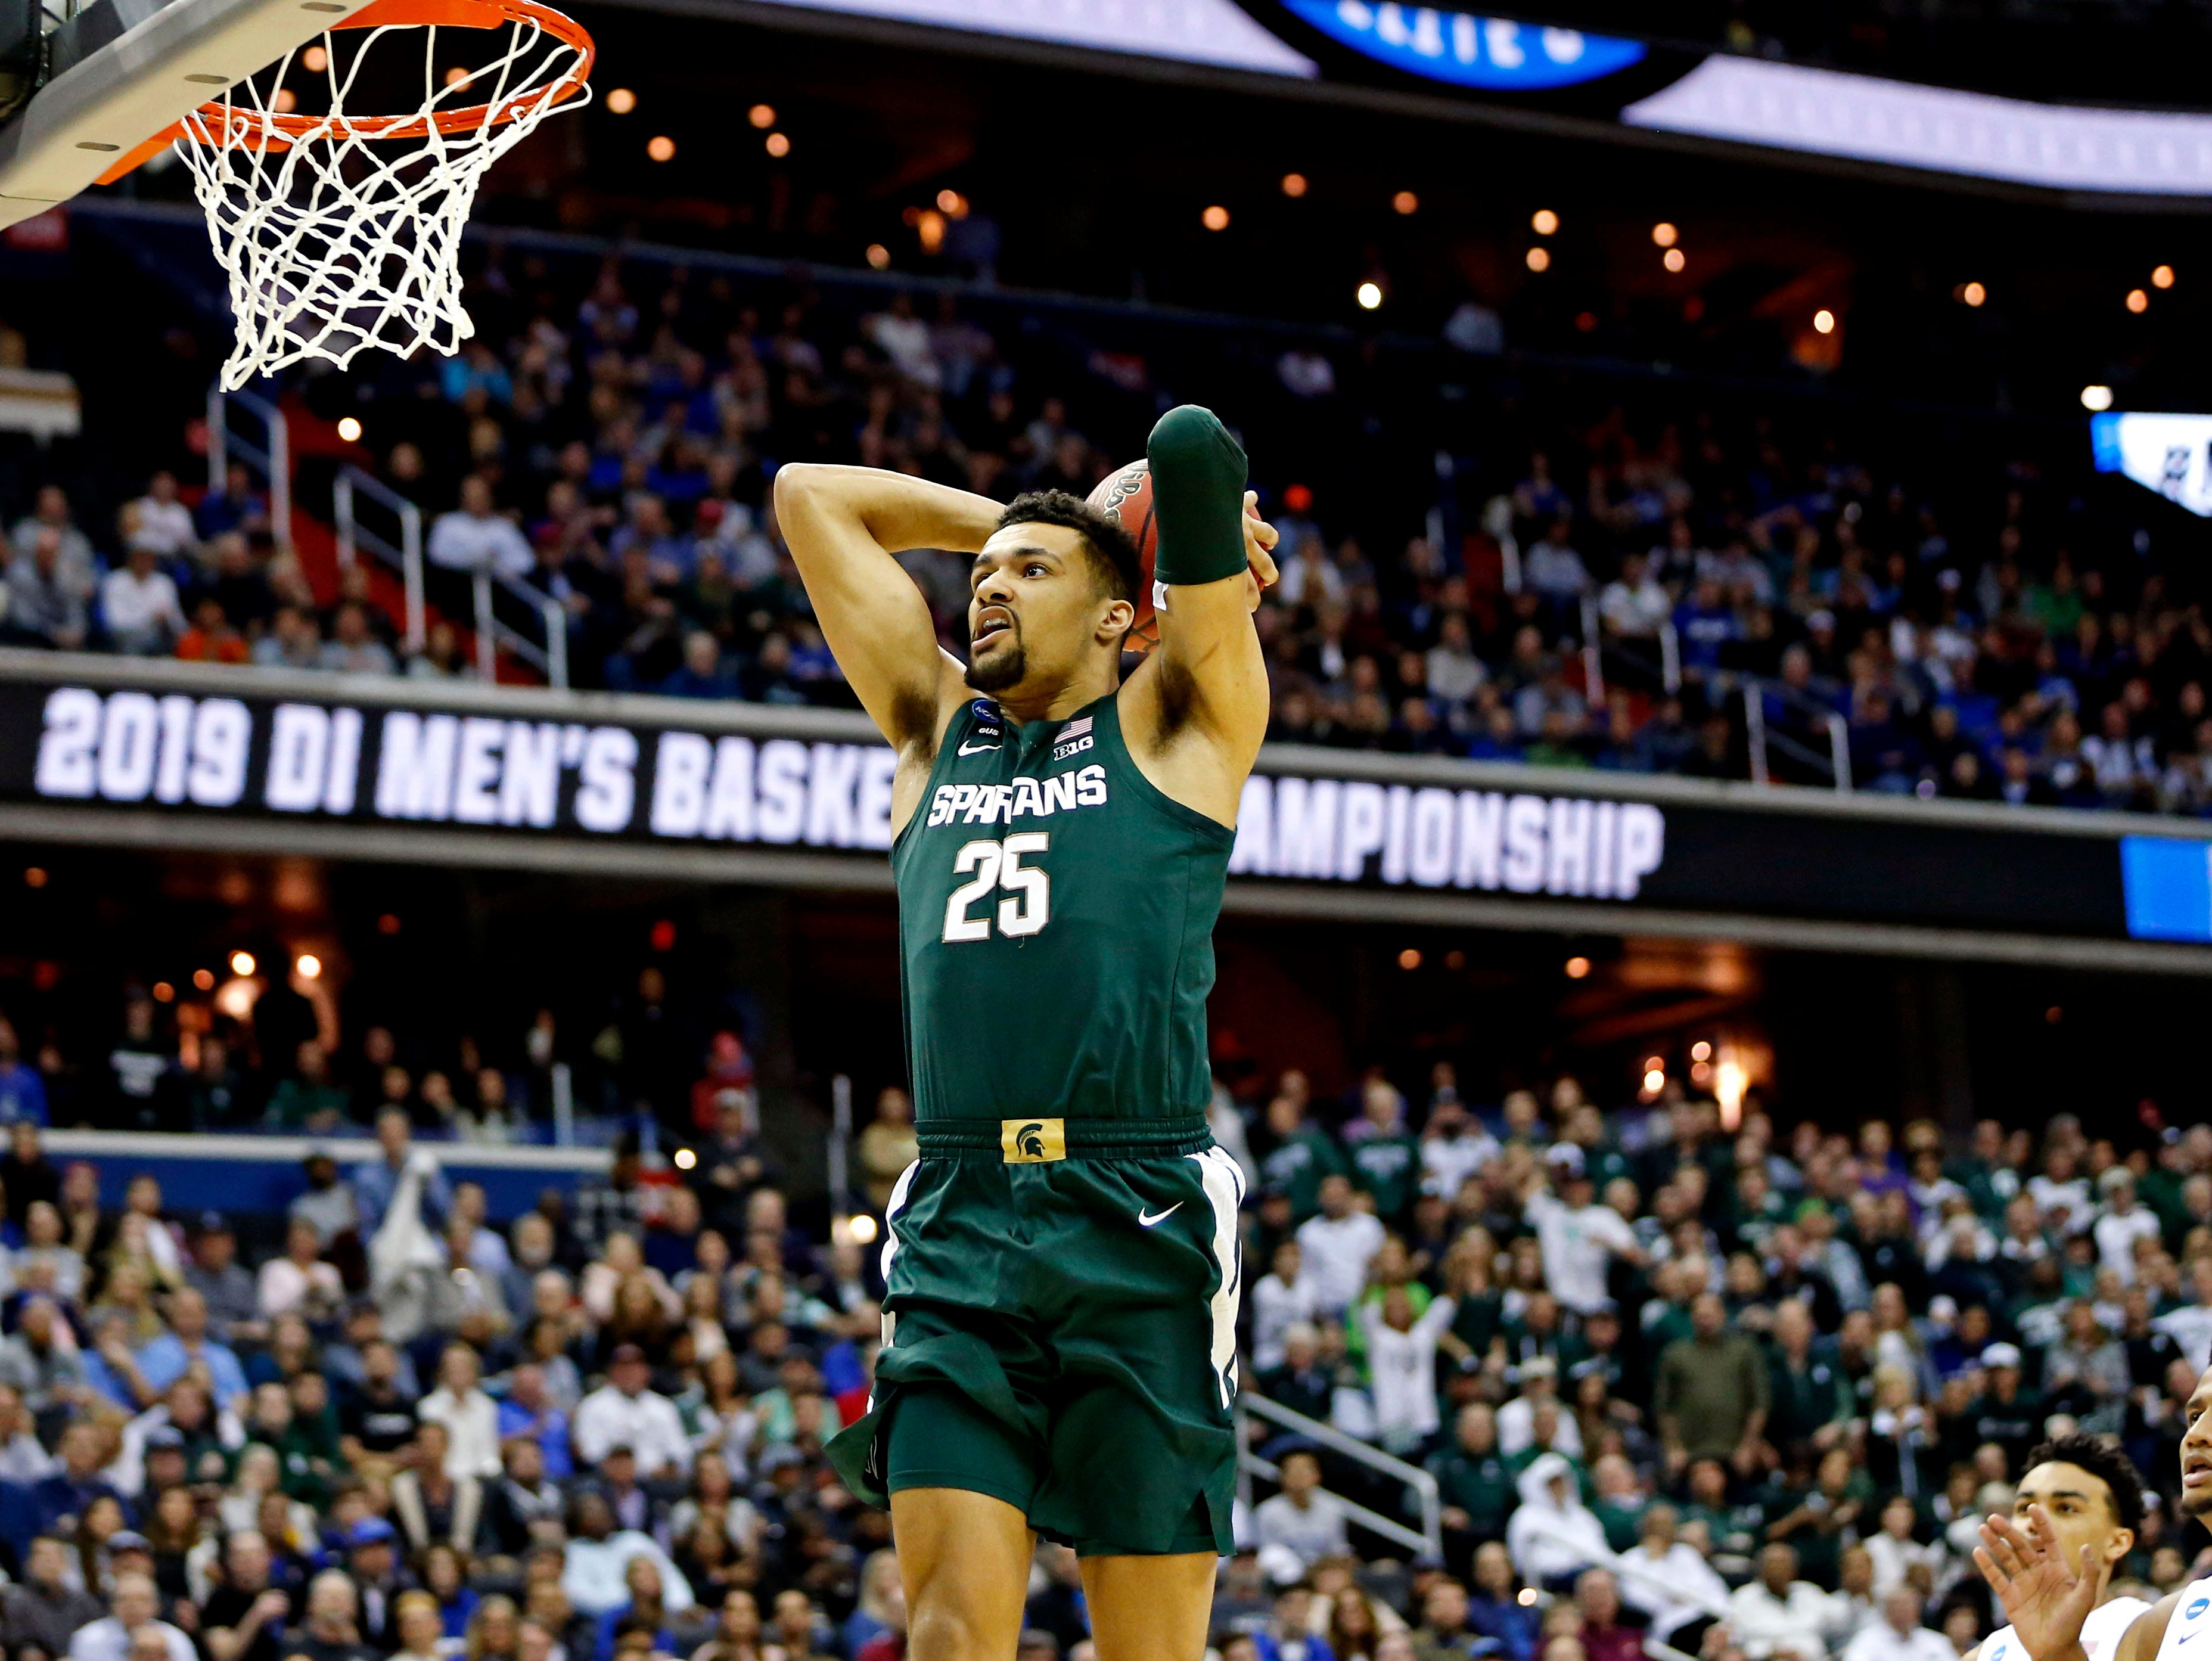 Michigan State Spartans forward Kenny Goins (25) dunks the ball during the first half against the Duke Blue Devils in the championship game of the east regional of the 2019 NCAA Tournament at Capital One Arena.